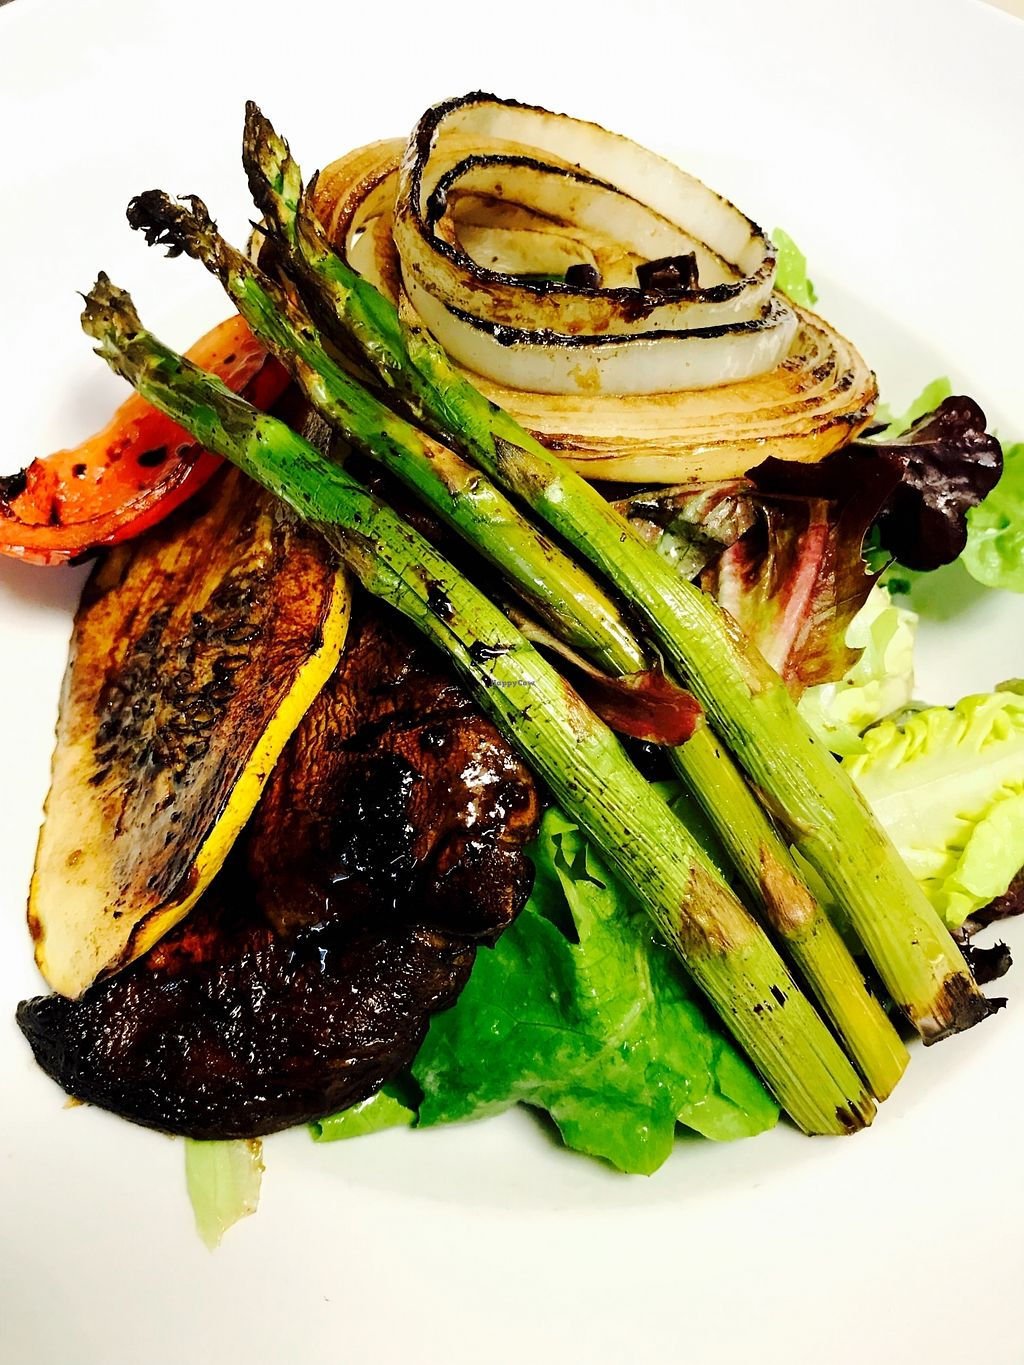 """Photo of S&P Oyster Company  by <a href=""""/members/profile/Spoyster"""">Spoyster</a> <br/>One of our most popular salad enhancers, Wood Grilled Vegetables. Choose from wood grilled asparagus, squash, spanish onion, zucchini, eggplant, mushrooms and roasted red peppers.  <br/> February 2, 2018  - <a href='/contact/abuse/image/97138/354093'>Report</a>"""